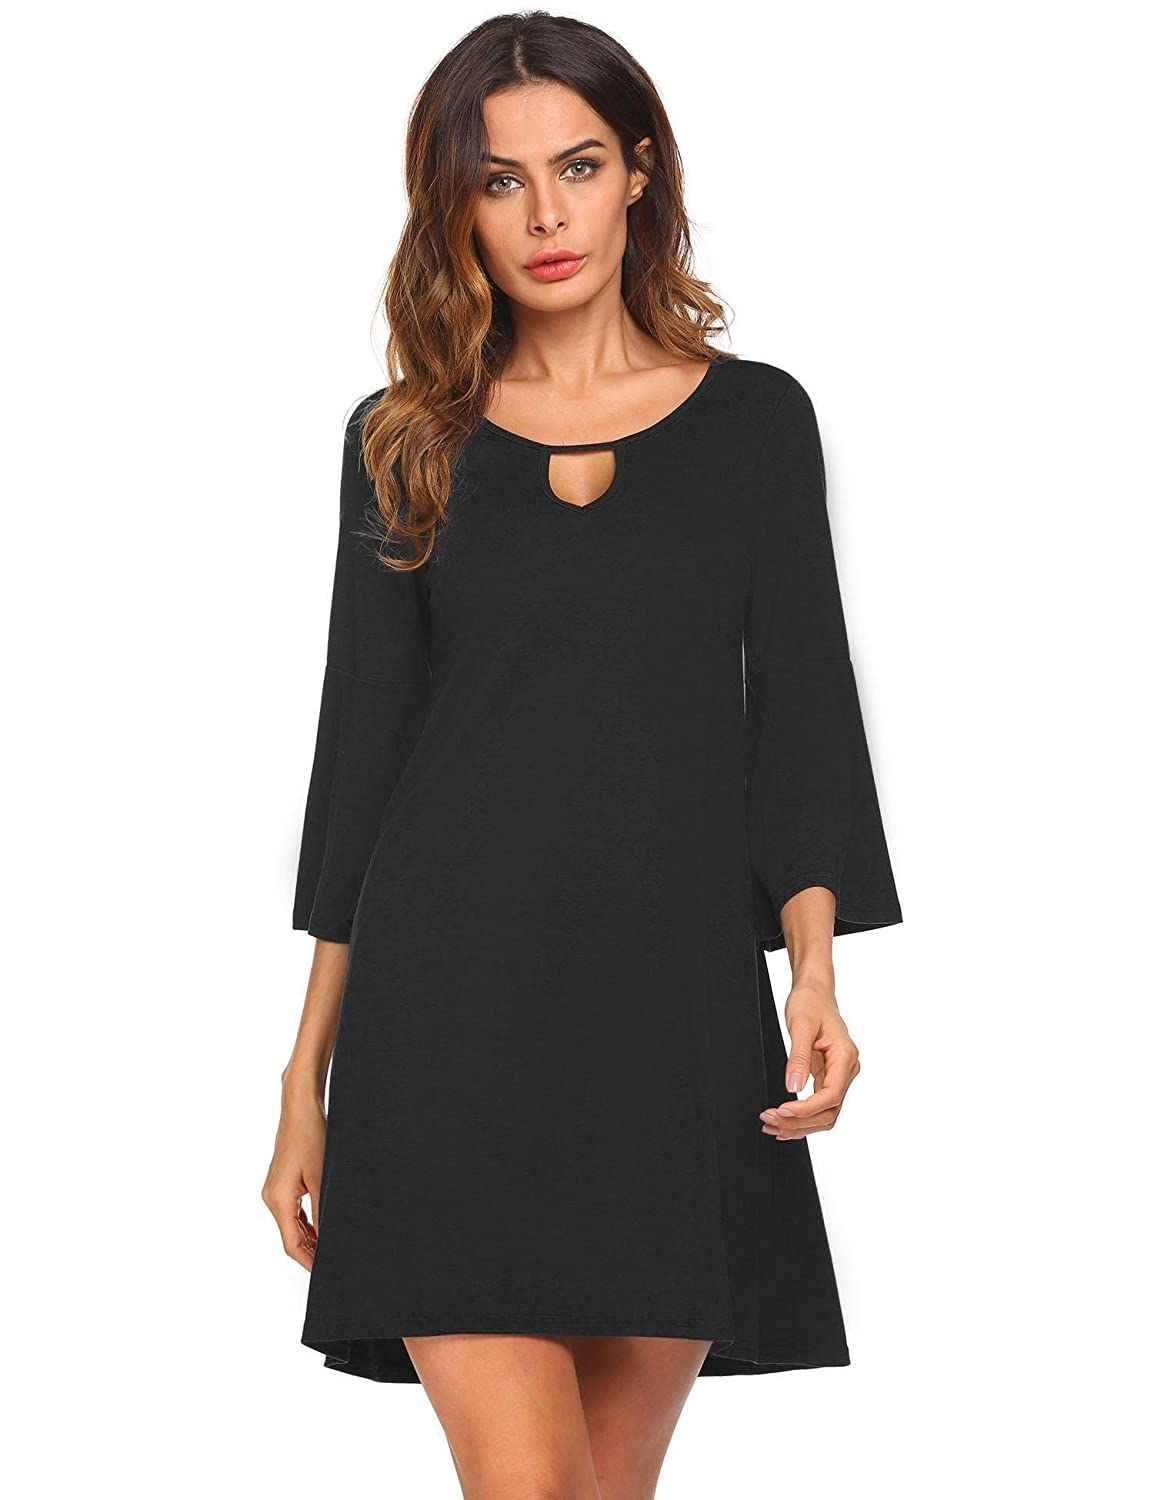 Black pasttry Women's Casual Solid Empire Waist Short Sleeve Above Knee Length Fit Flare A Line Dress